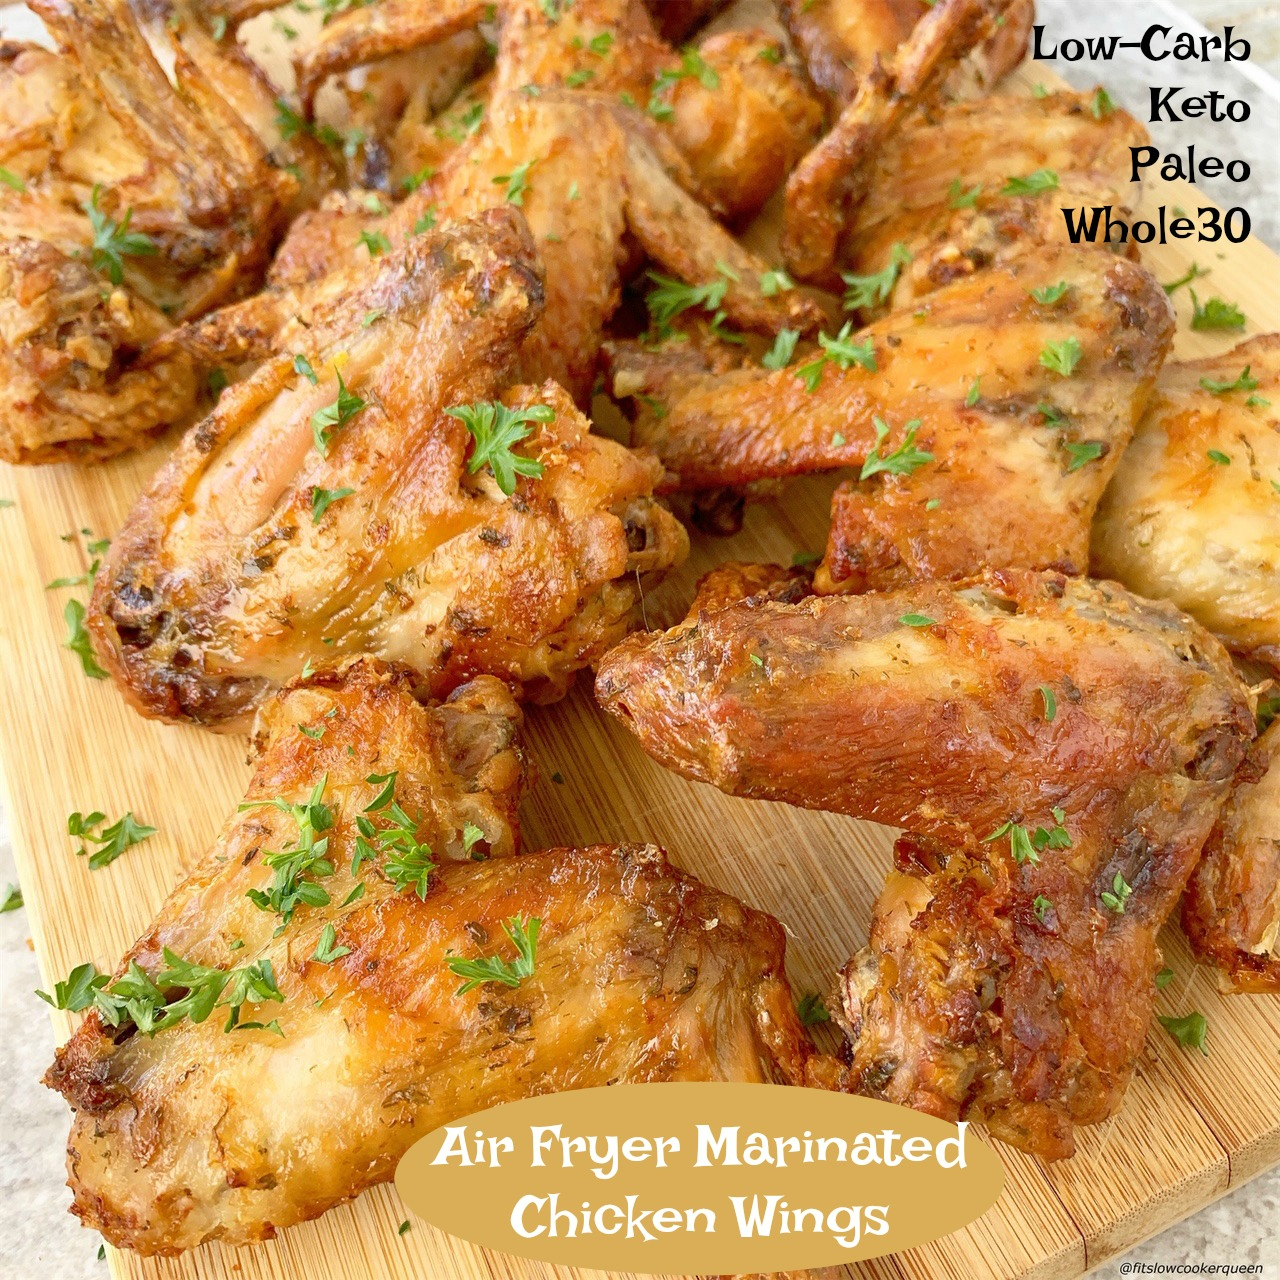 Air Fryer Marinated Chicken Wings Keto Low Carb Paleo Whole30